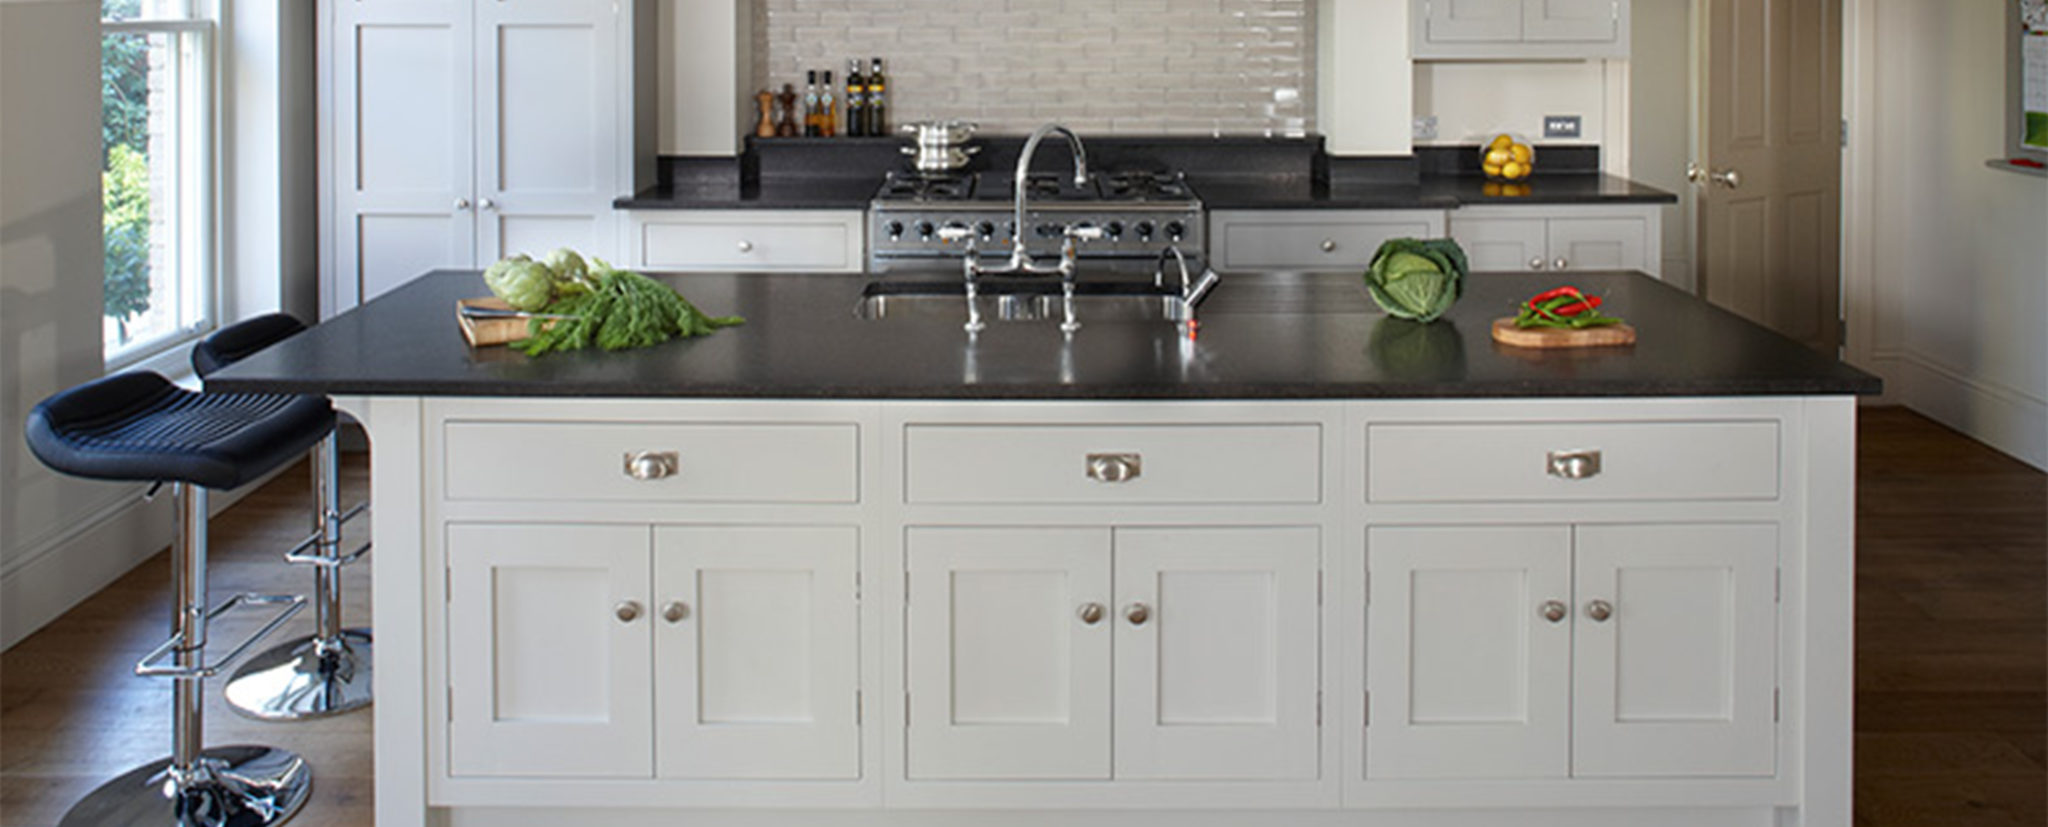 Esher Kitchen Design by Brayer - Traditional Country Shaker Style Kitchen